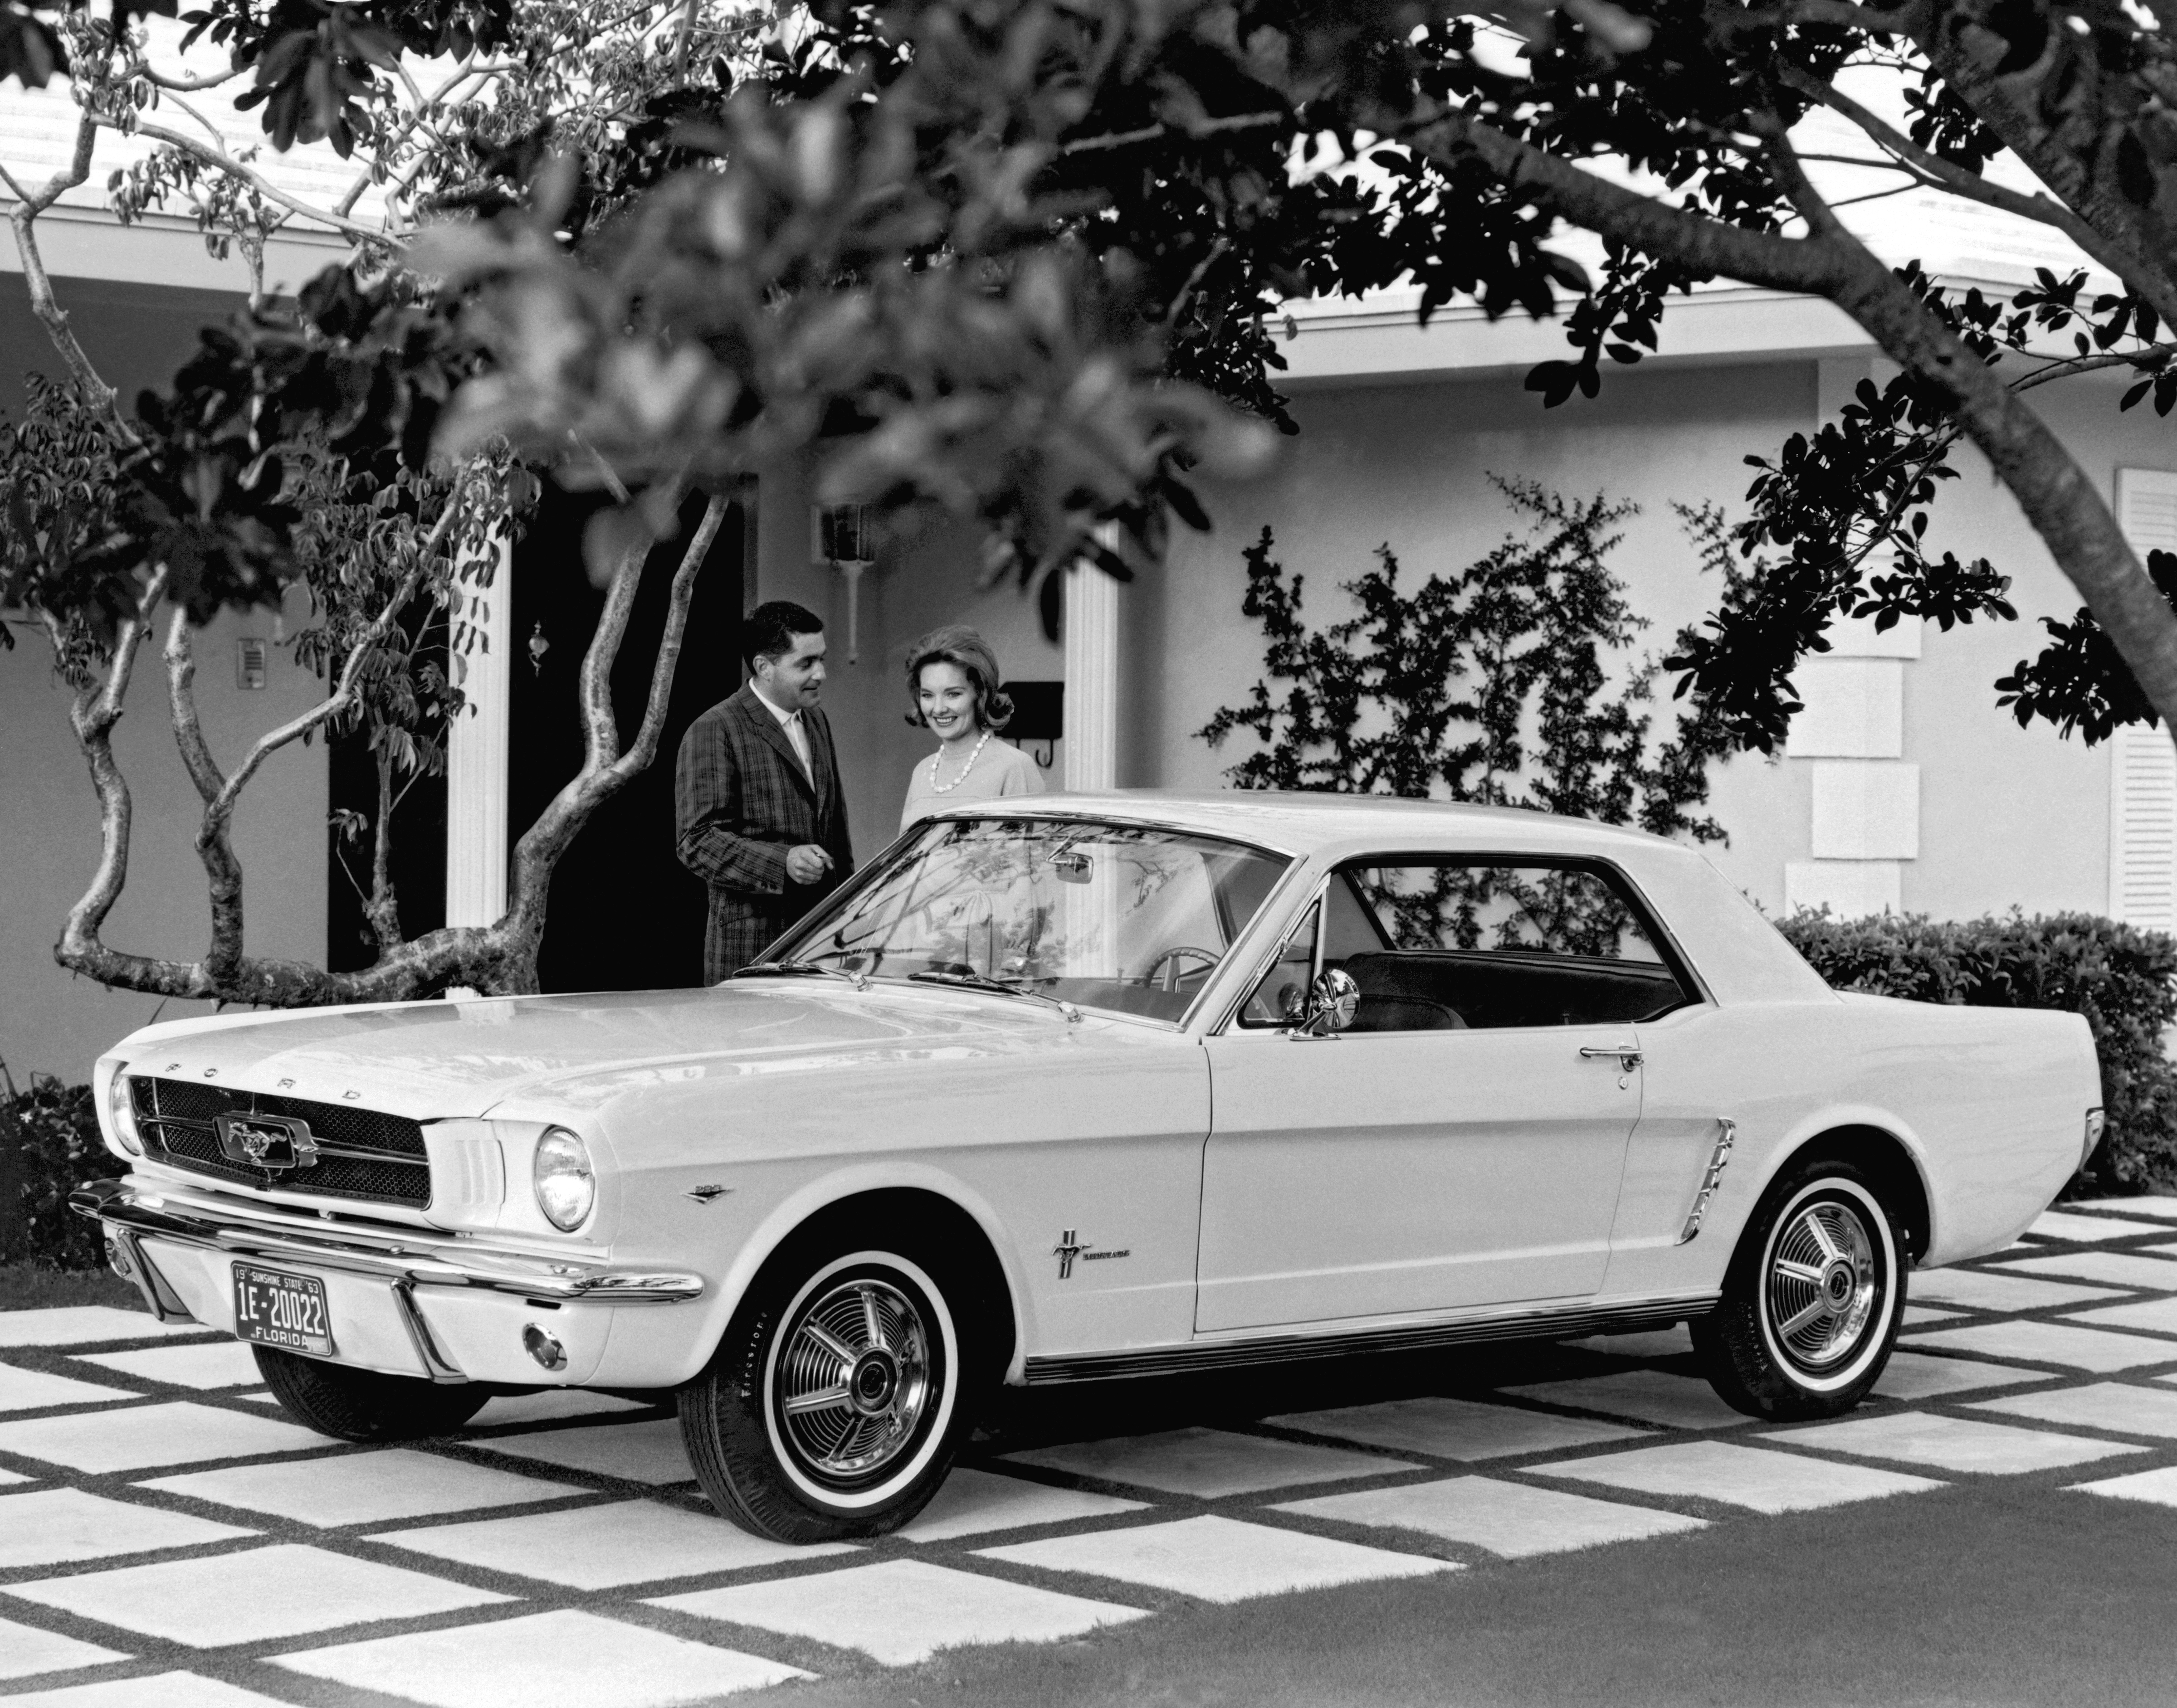 Ford Mustang, Which Was Introduced To The Public On April 17, 1964 At The